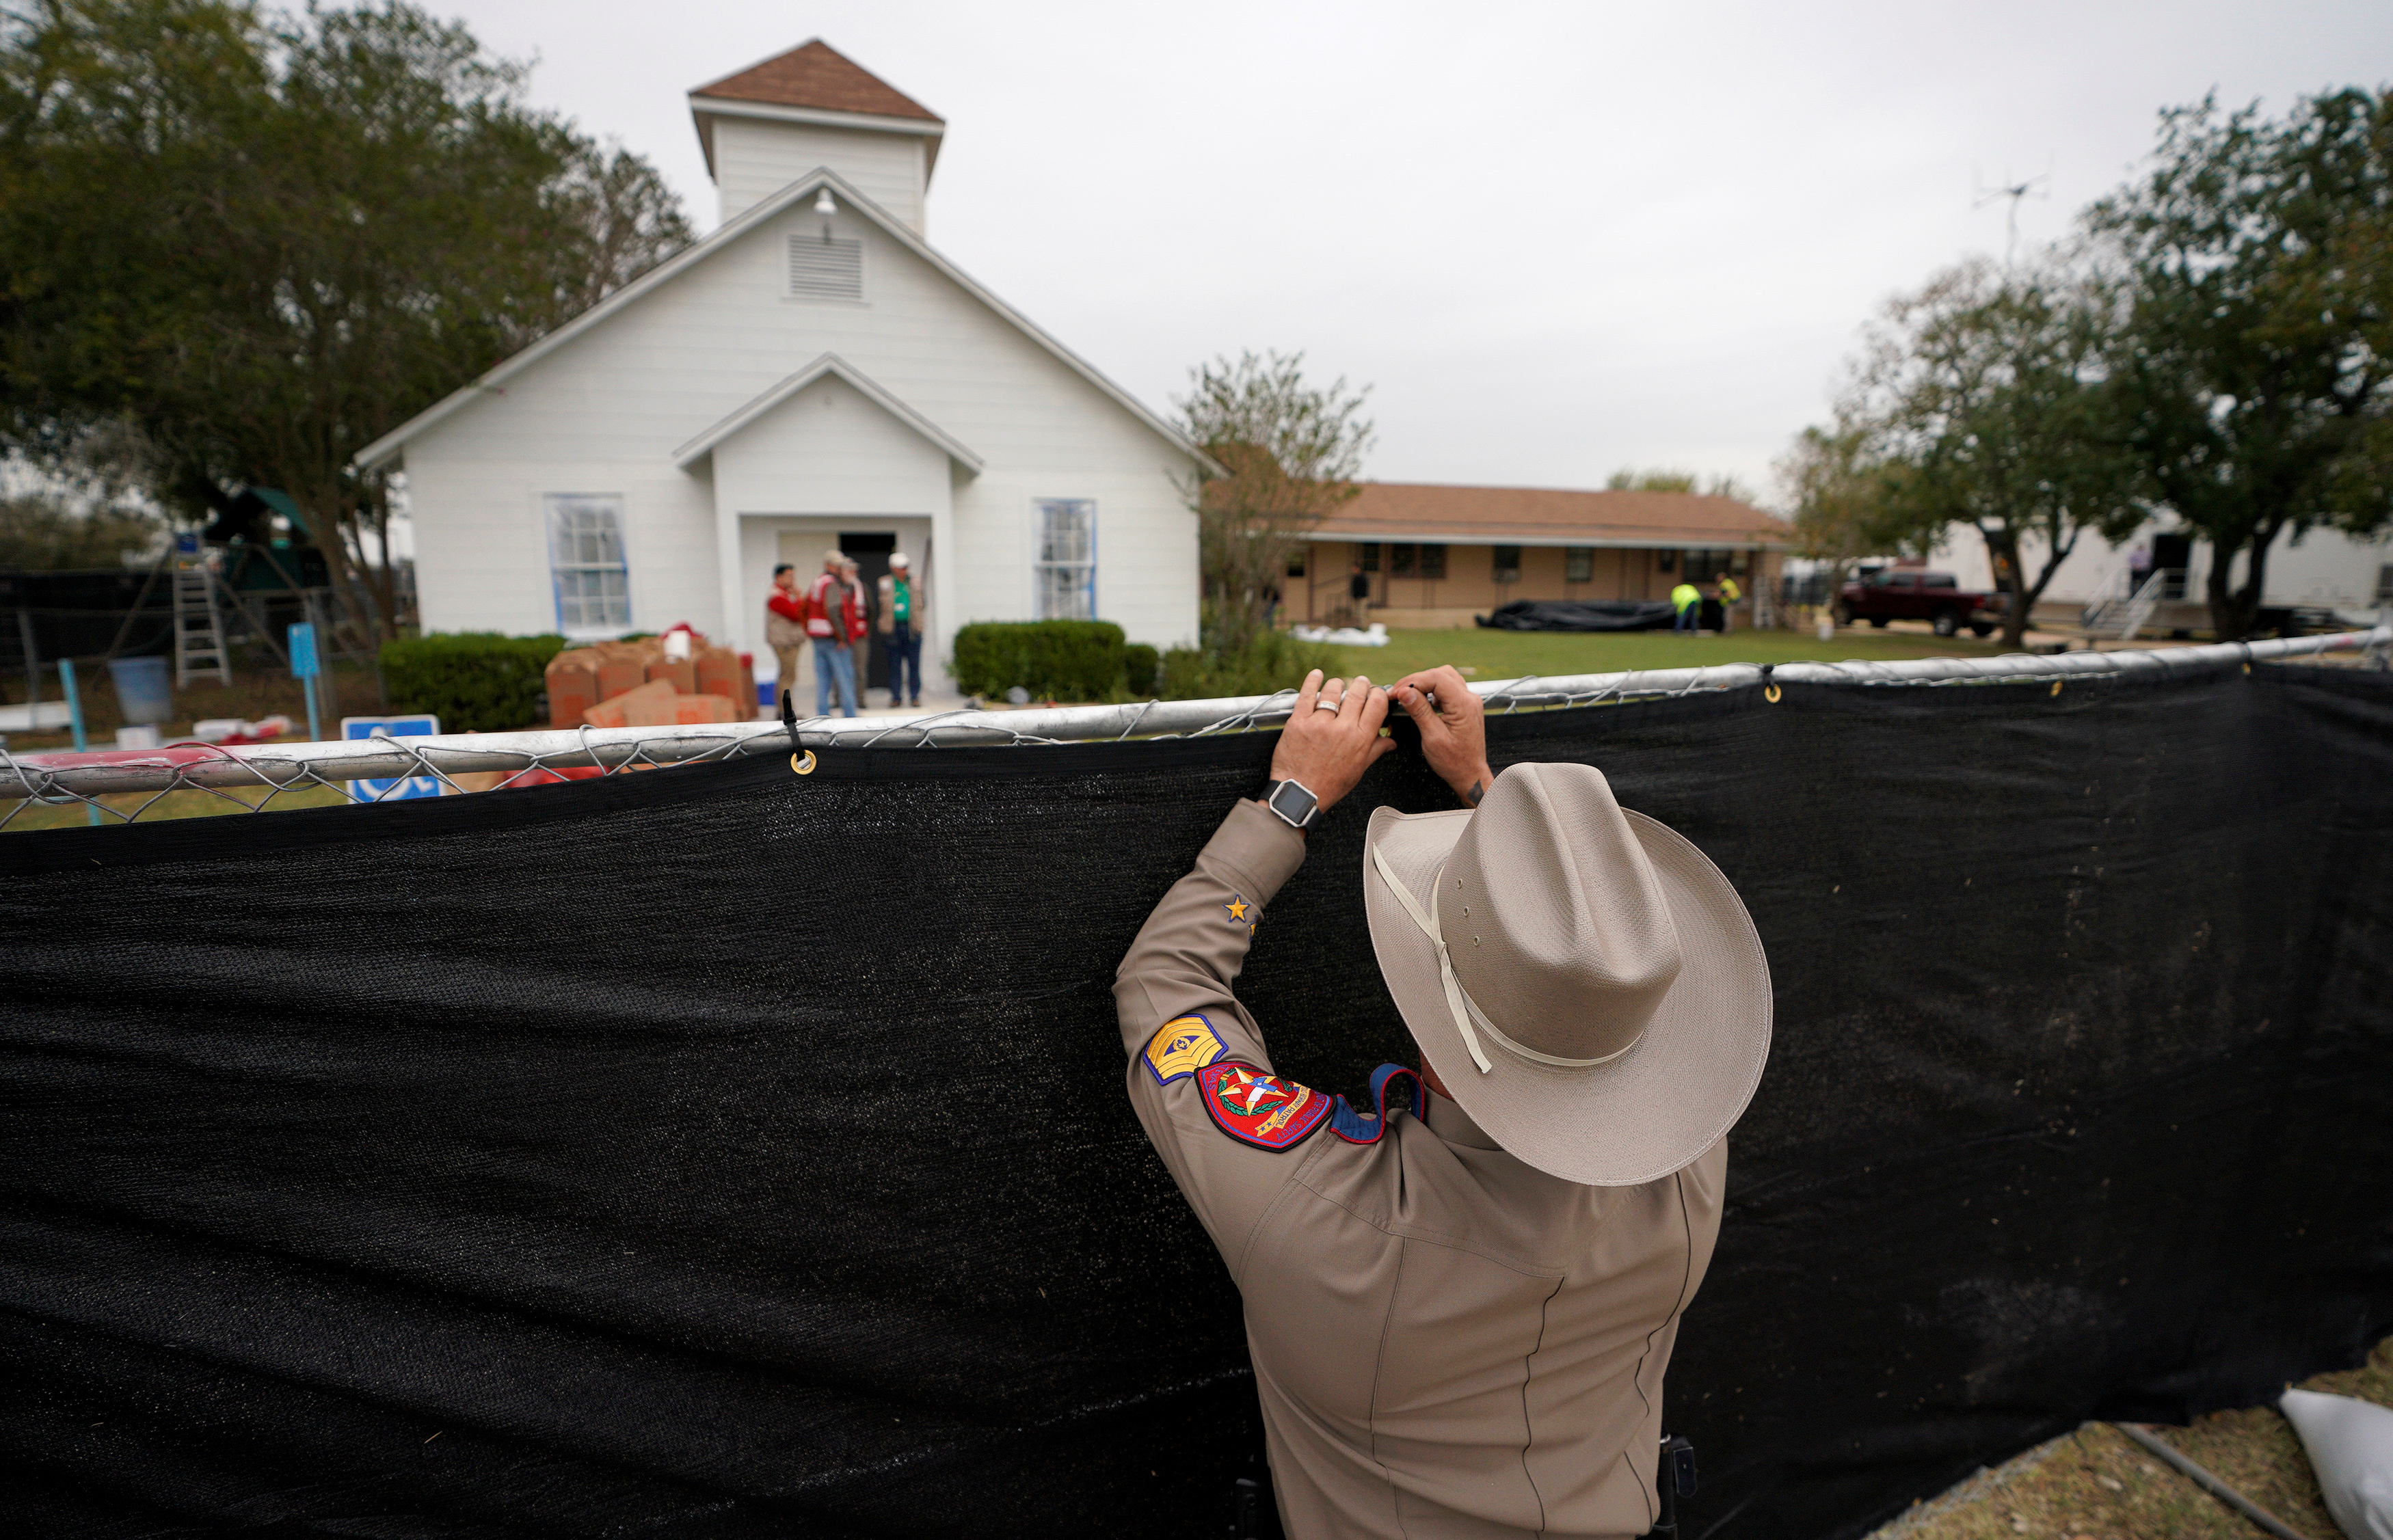 A Texas state trooper helps erect a fence around the site of the shooting at the First Baptist Church of Sutherland Springs